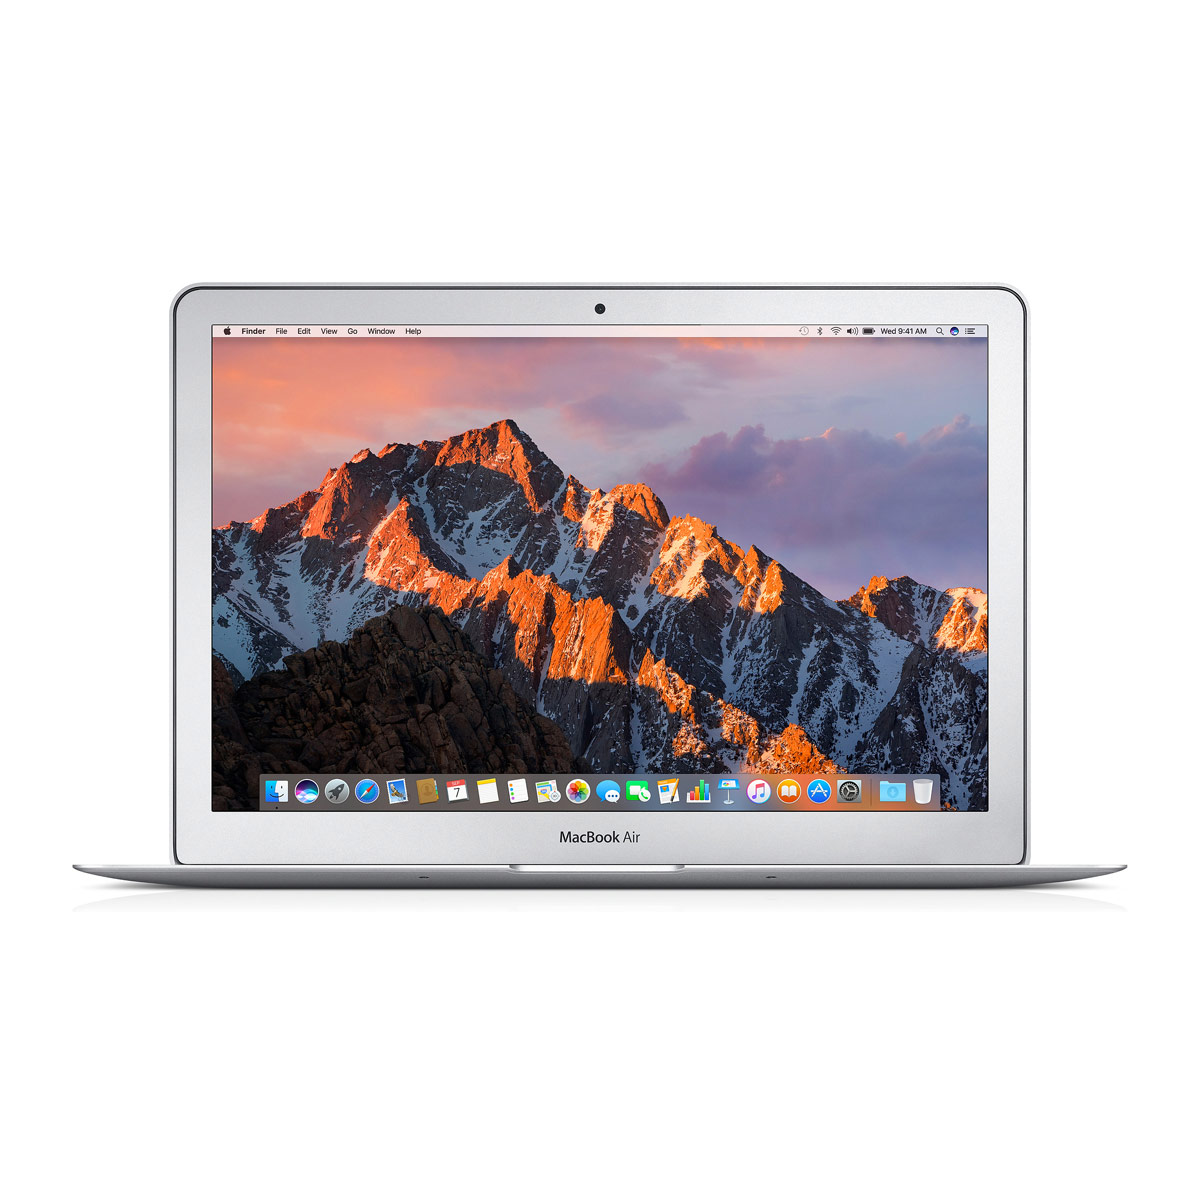 MacBook Air 13 inch Dual i7 2.2GHz 8GB 512GB Intel HD 6000